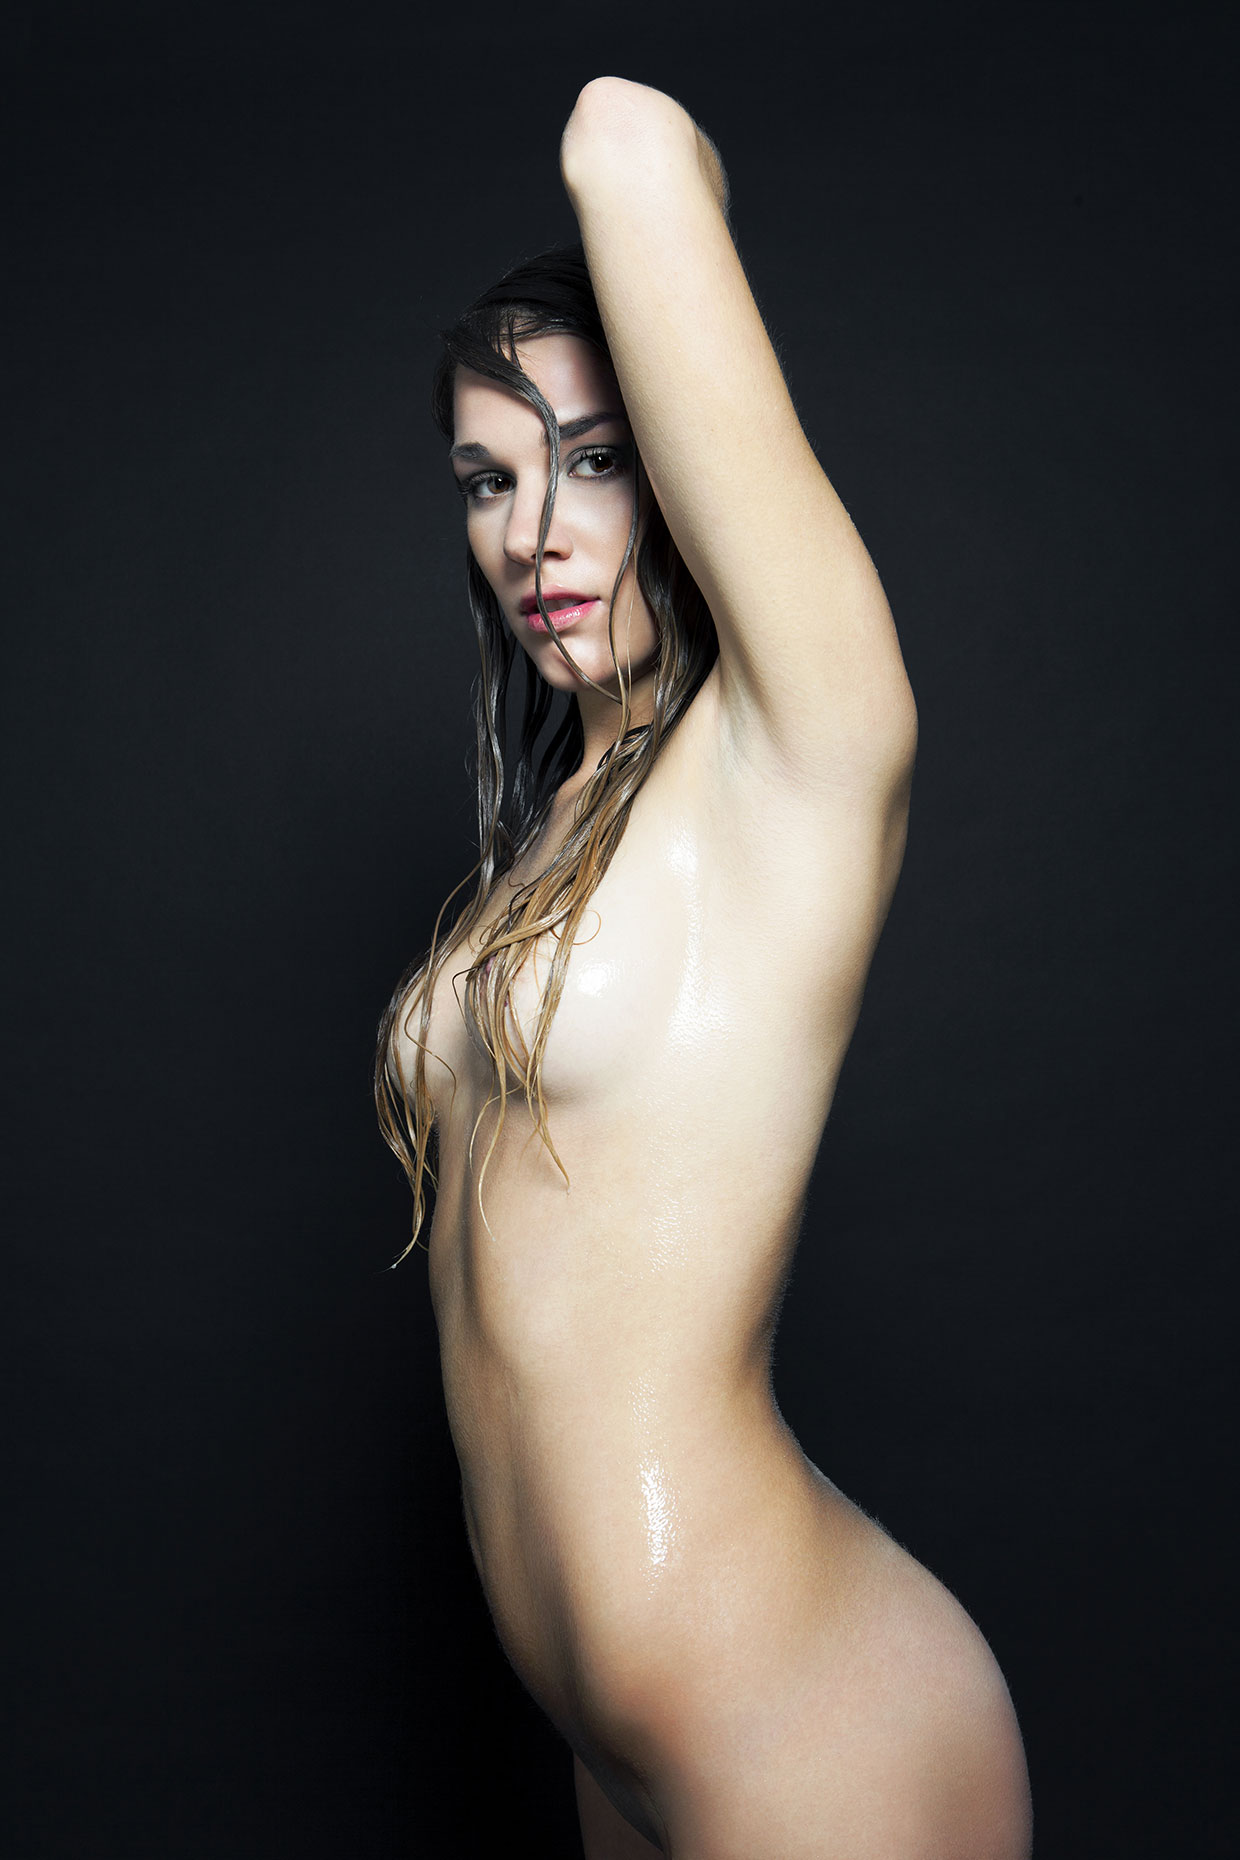 Wet and nude young woman standing, 3/4 length.